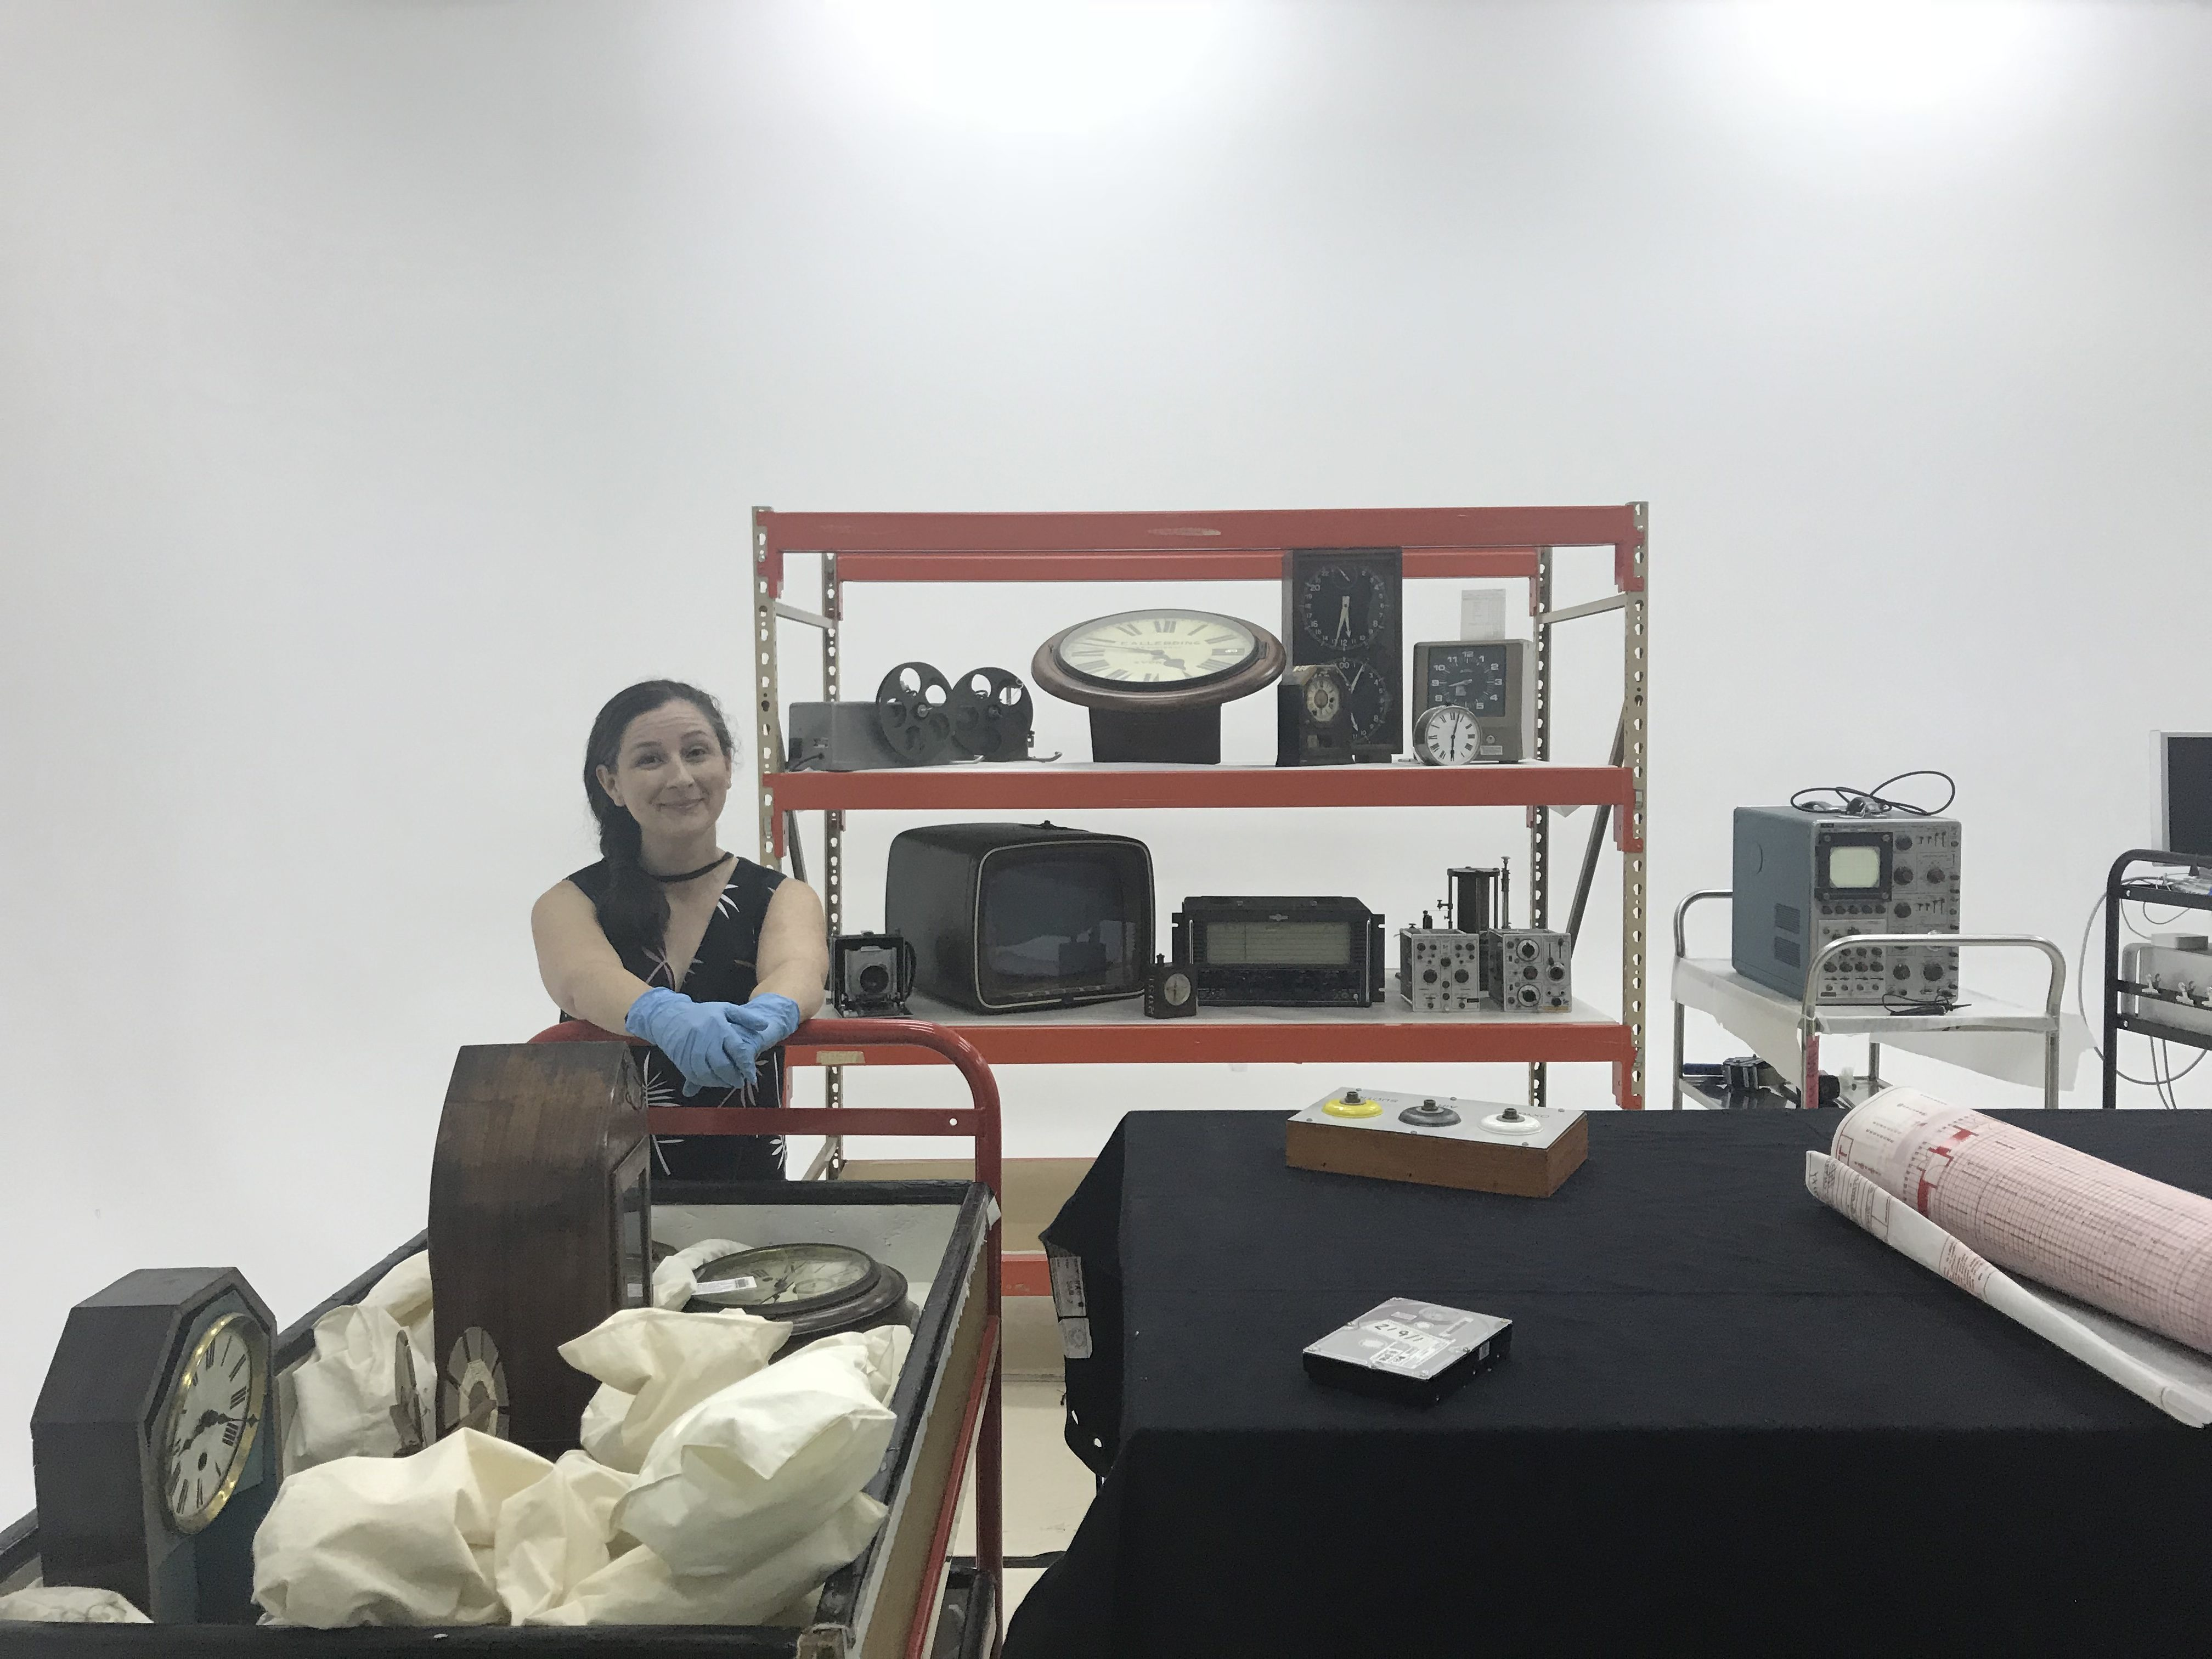 A woman in a black top poses with a trolley full of collection objects. The objects are packed with cushions and small bean bags. The woman is wearing blue latex gloves. Behind her is a set of industrial shelves containing more Museum objects.